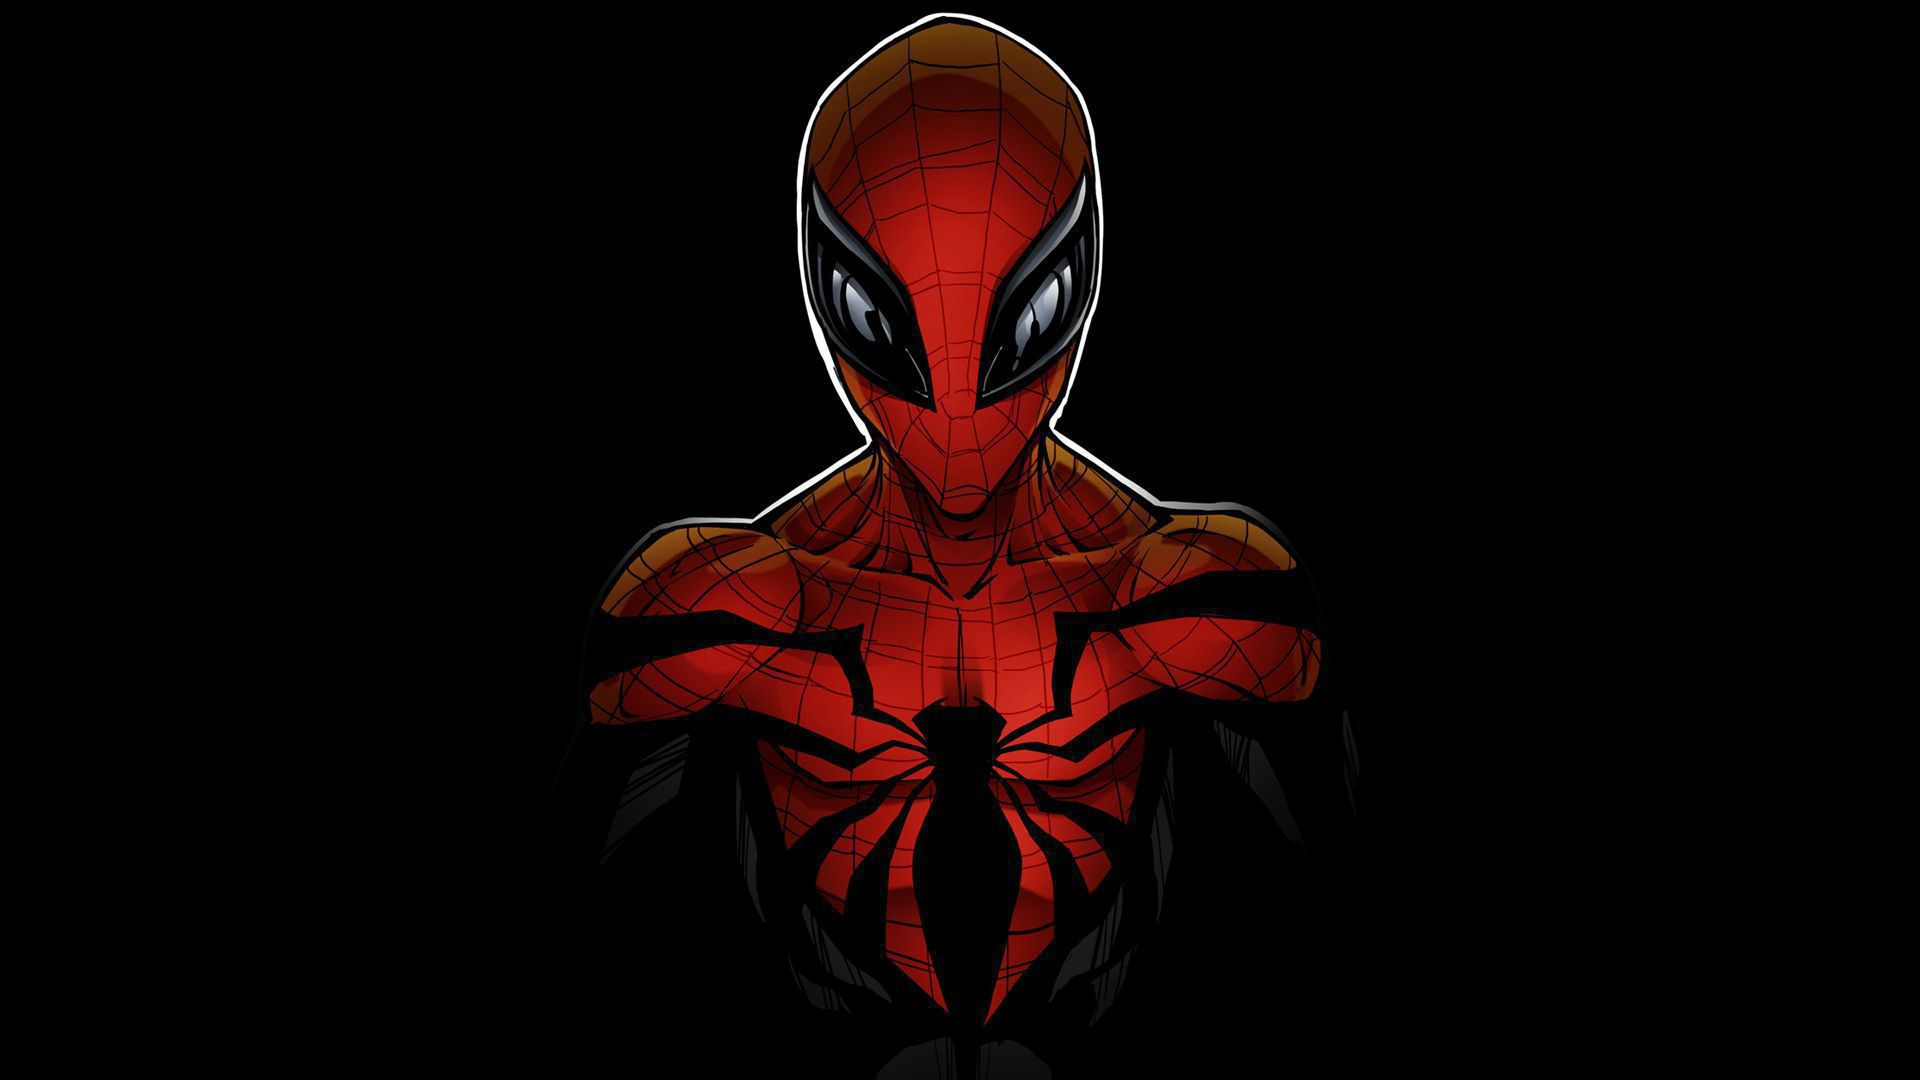 Spider Man HD Background